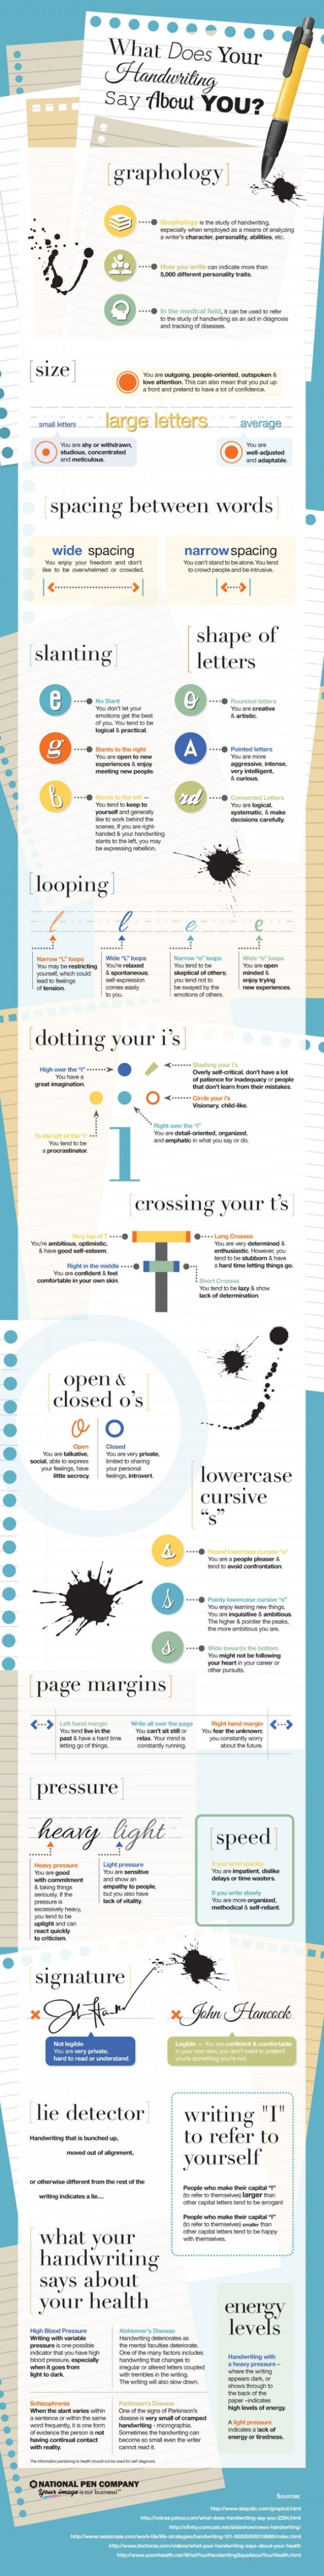 What Does Your Handwriting Say About You? (By